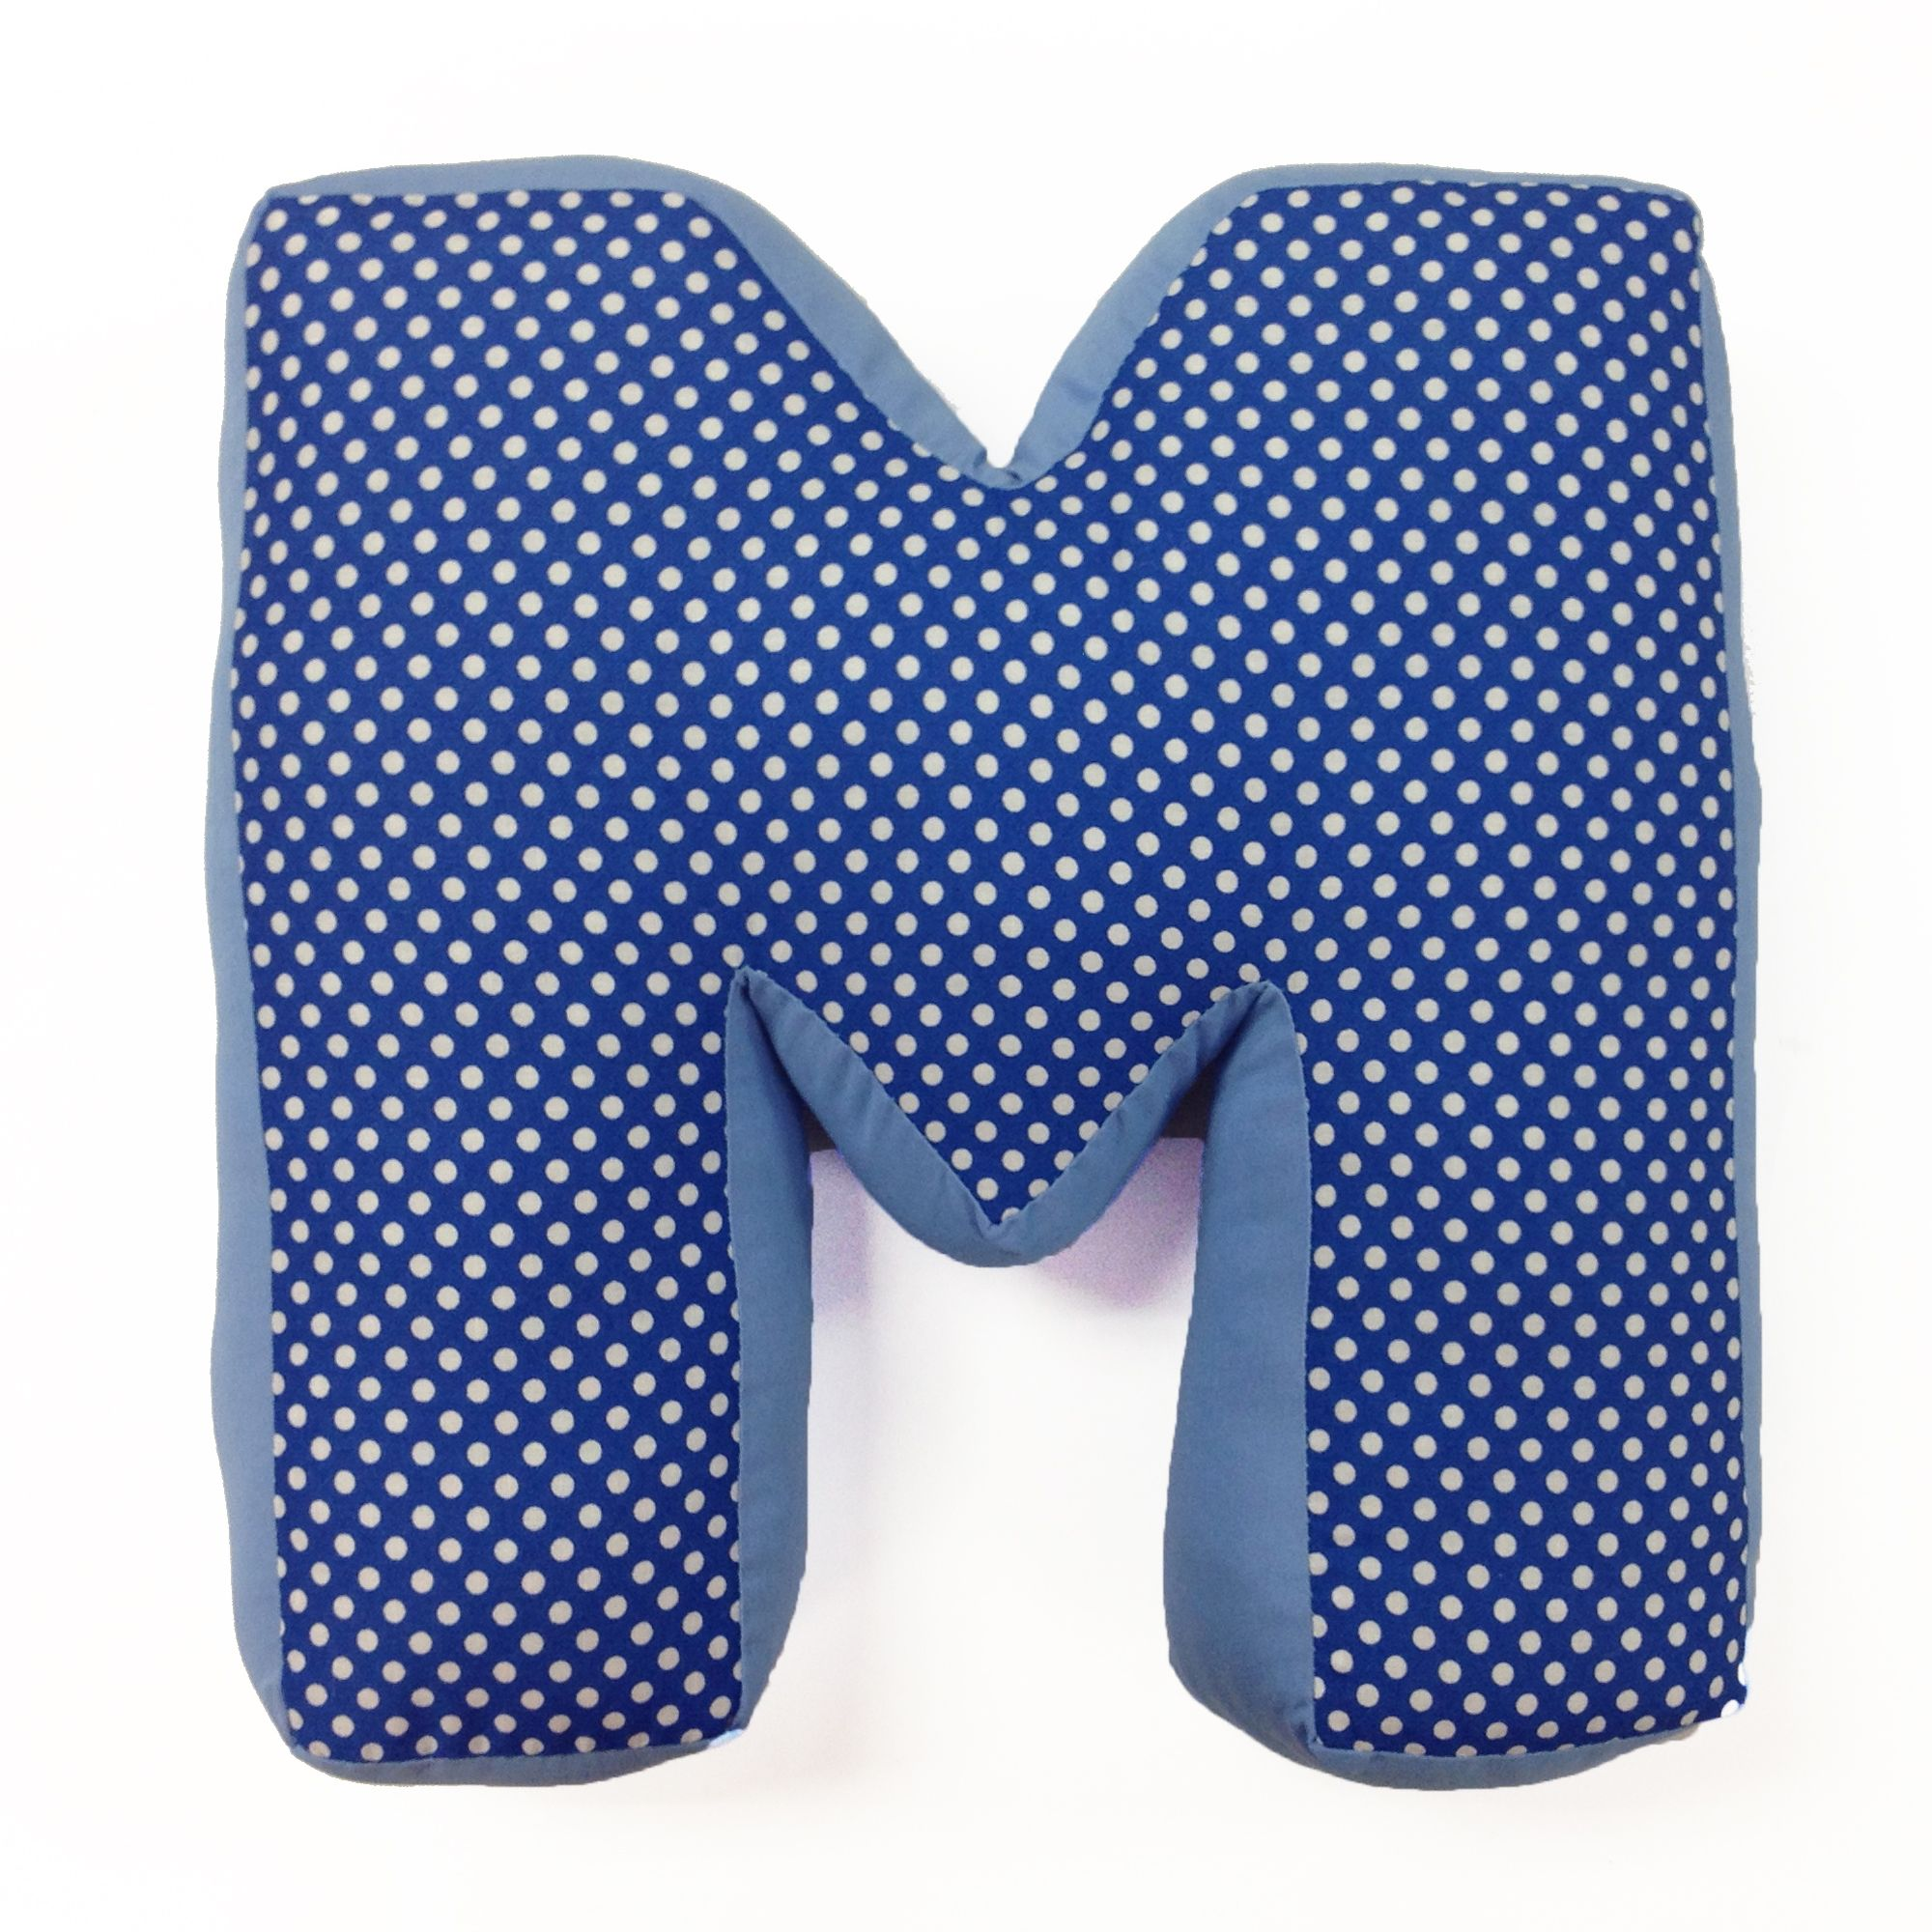 simplicity blue m letter pillow